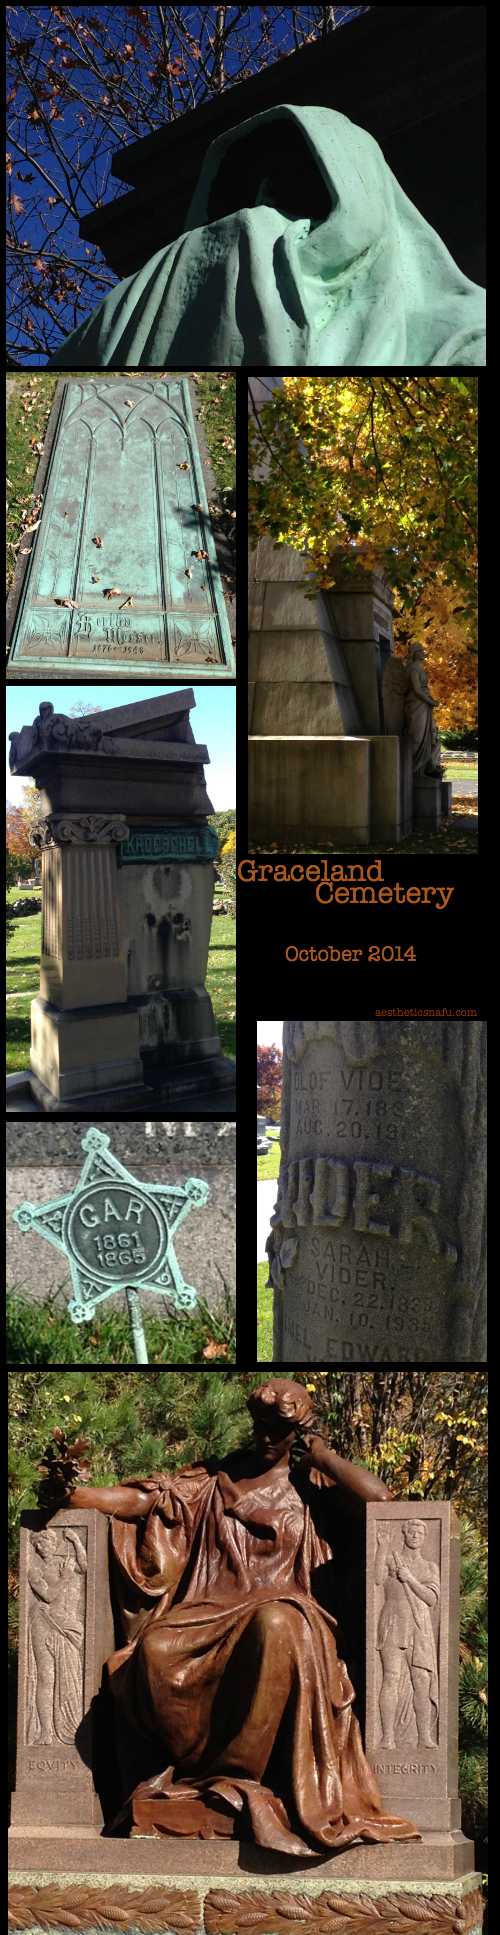 Graceland Cemetery Chicago October 2014